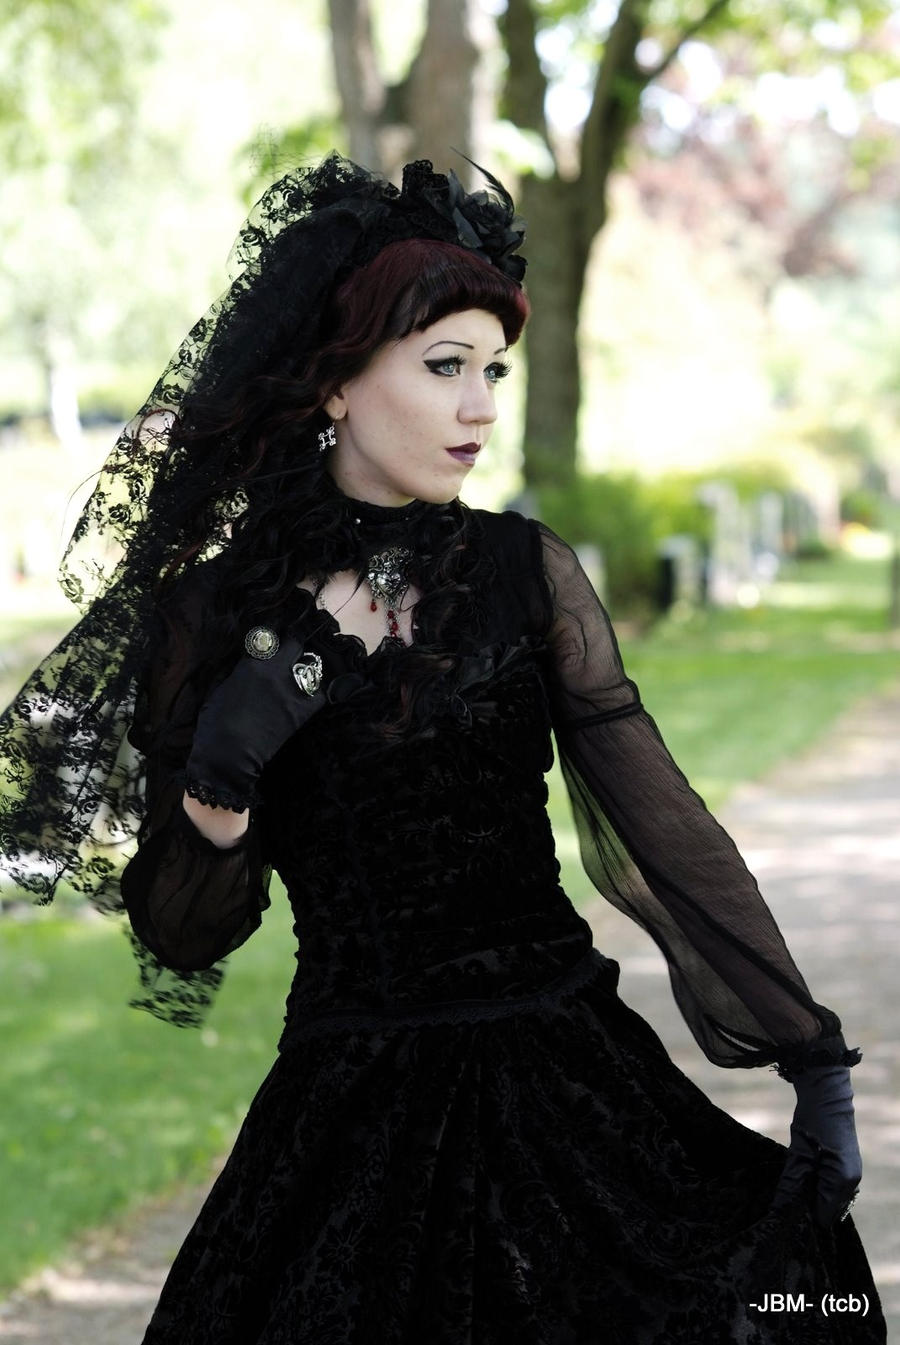 Models, Goth and Viper on Pinterest